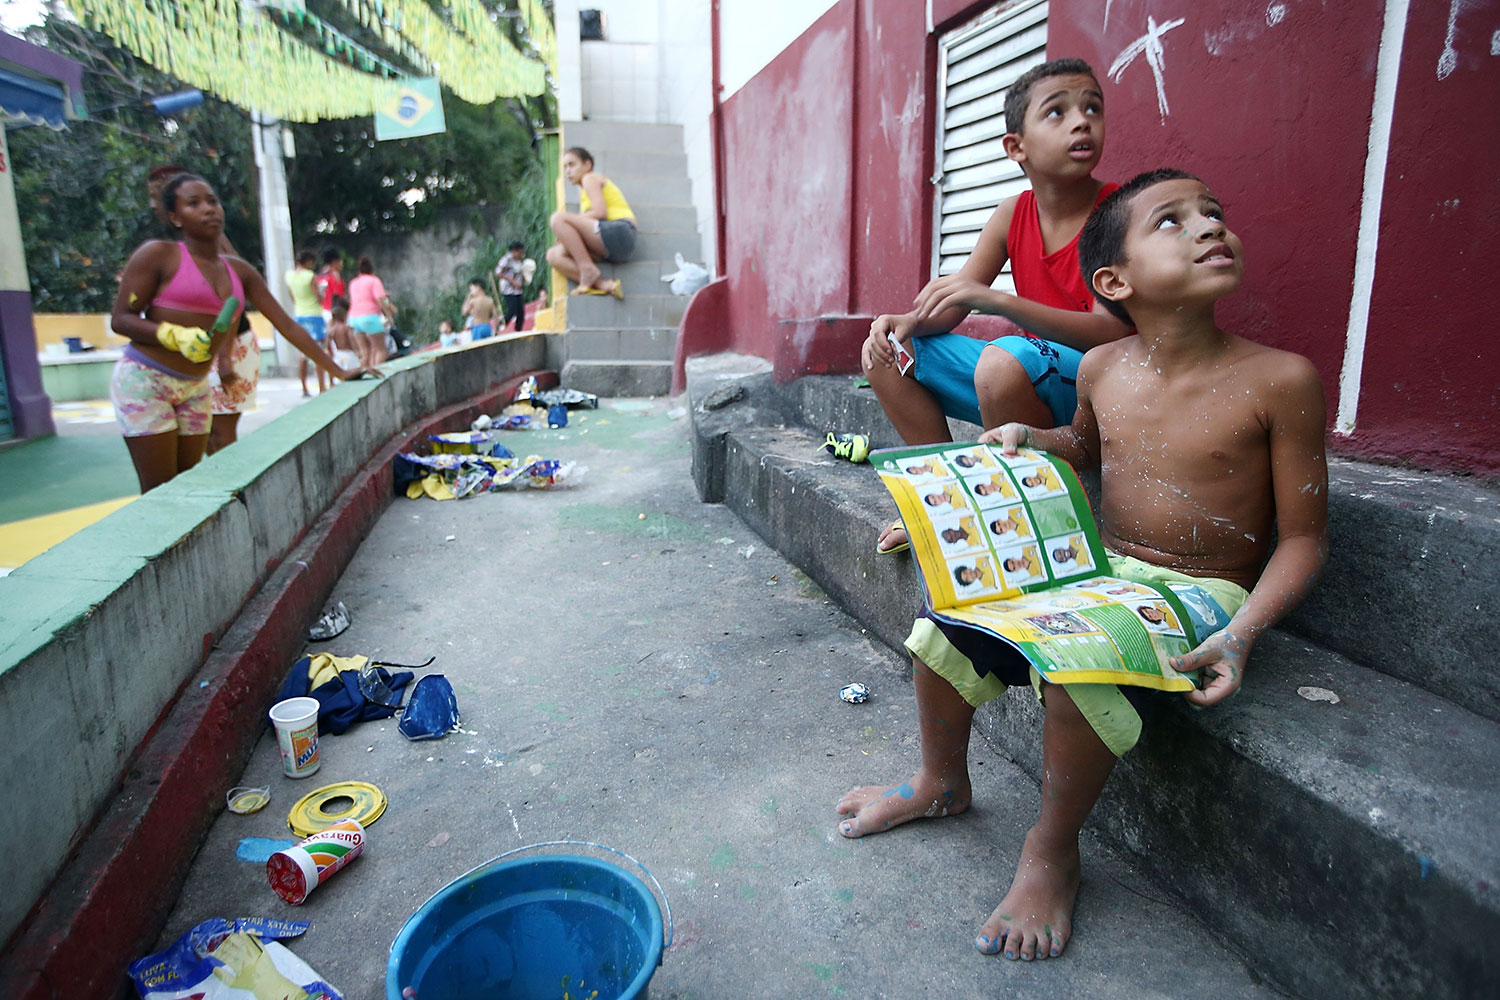 Rio de Janeiro, Brazil, 2014.  Brazilians gather while painting a section of the Santa Marta favela in Brazilian colors as a boy holds his Panini World Cup sticker album.